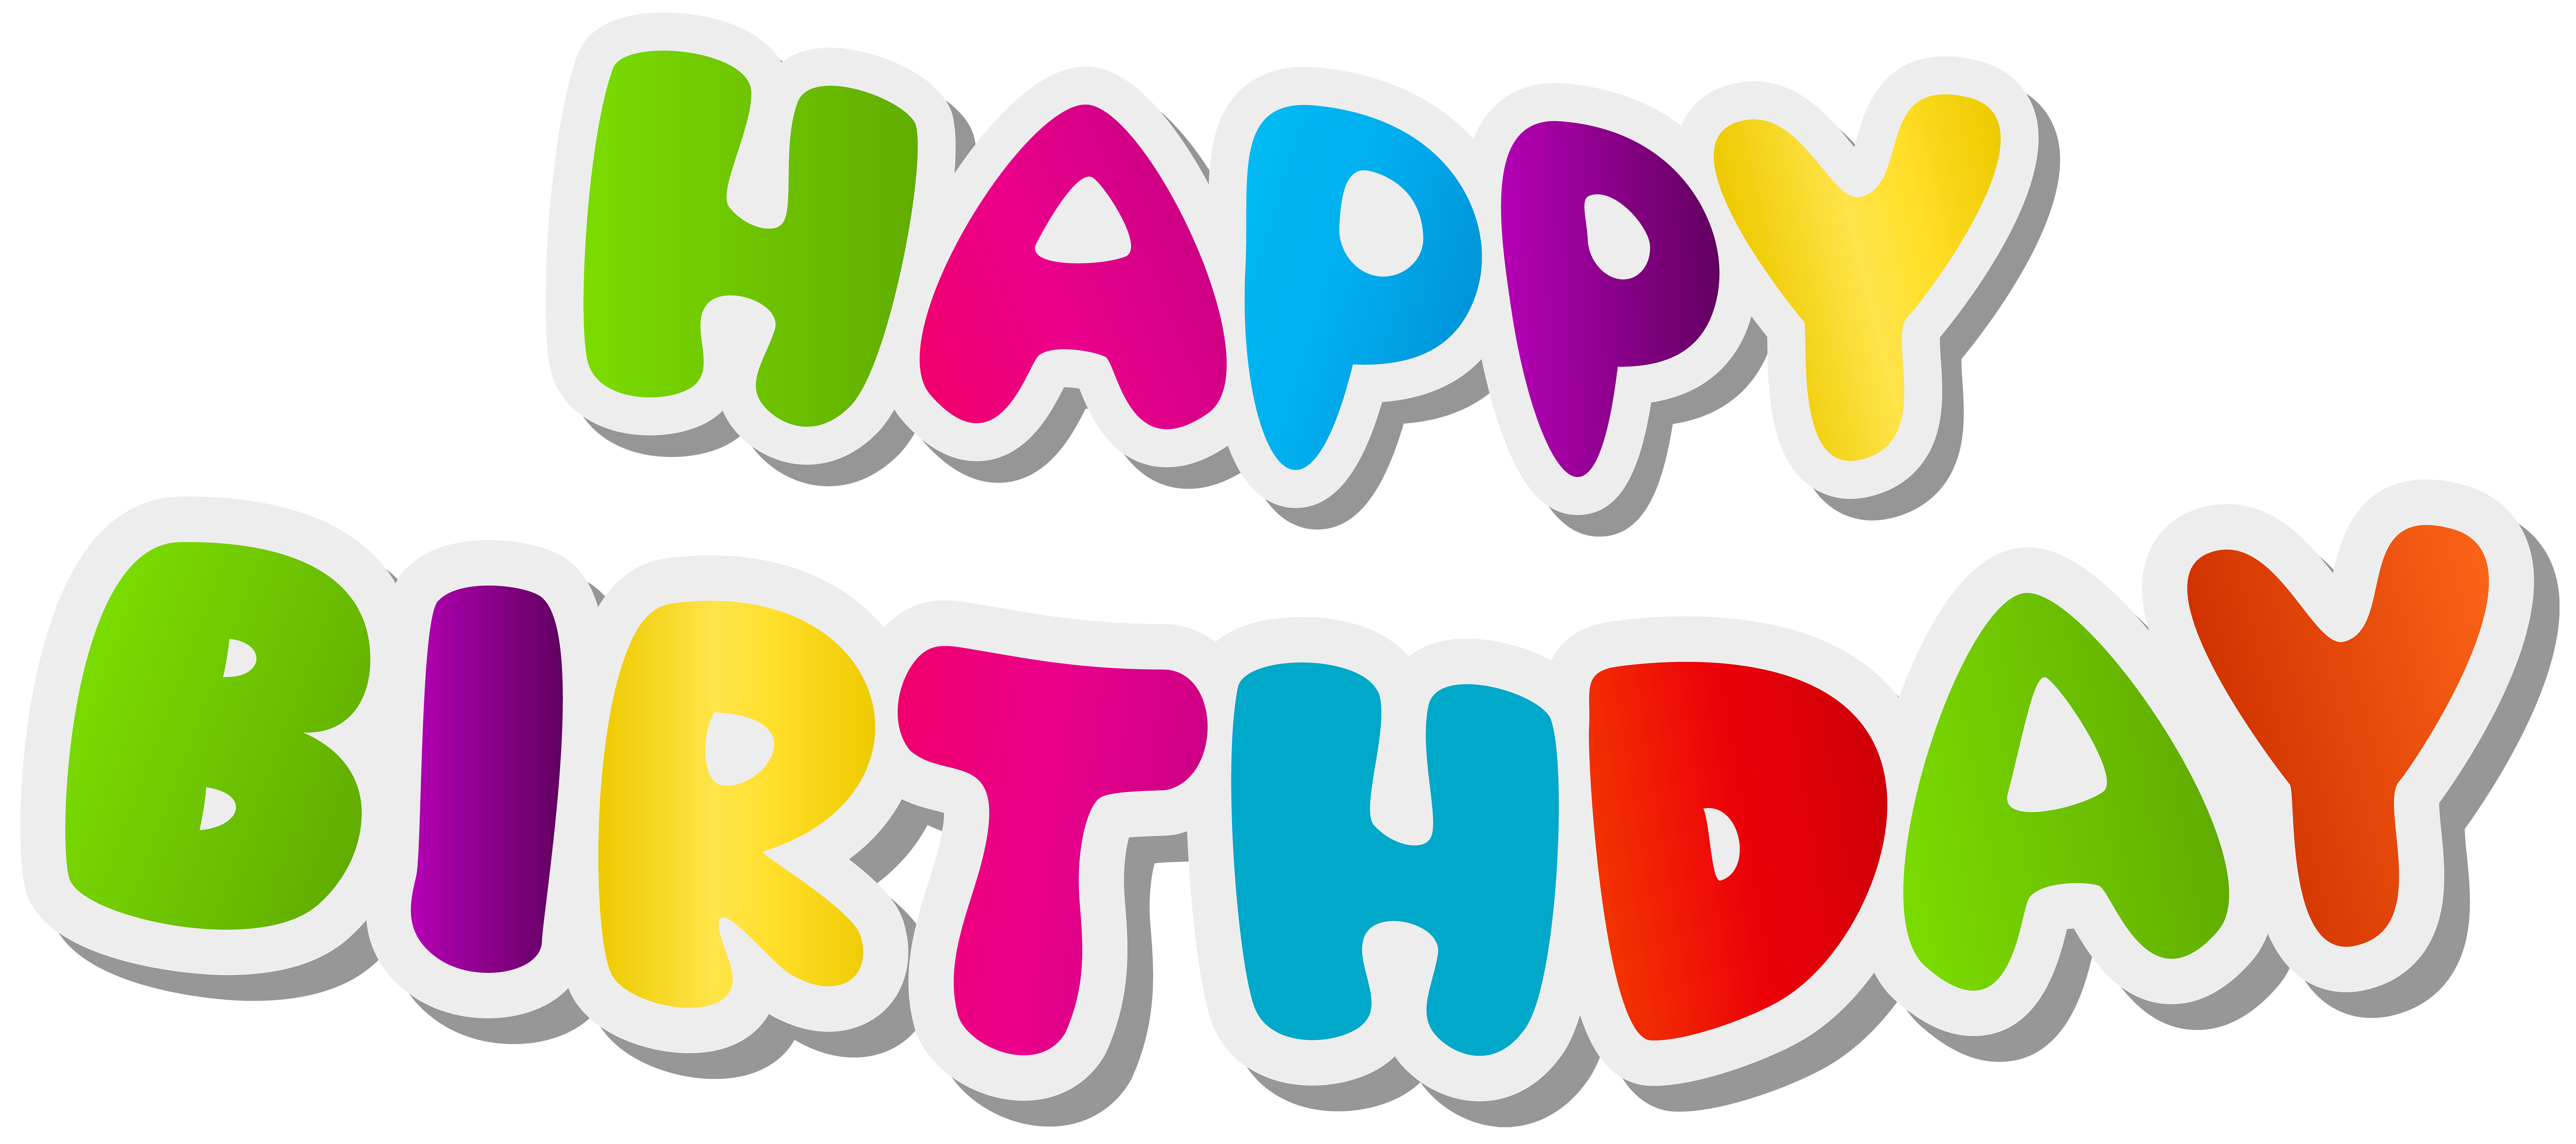 banner black and white download Happy birthday clipart for facebook. Text png clip art